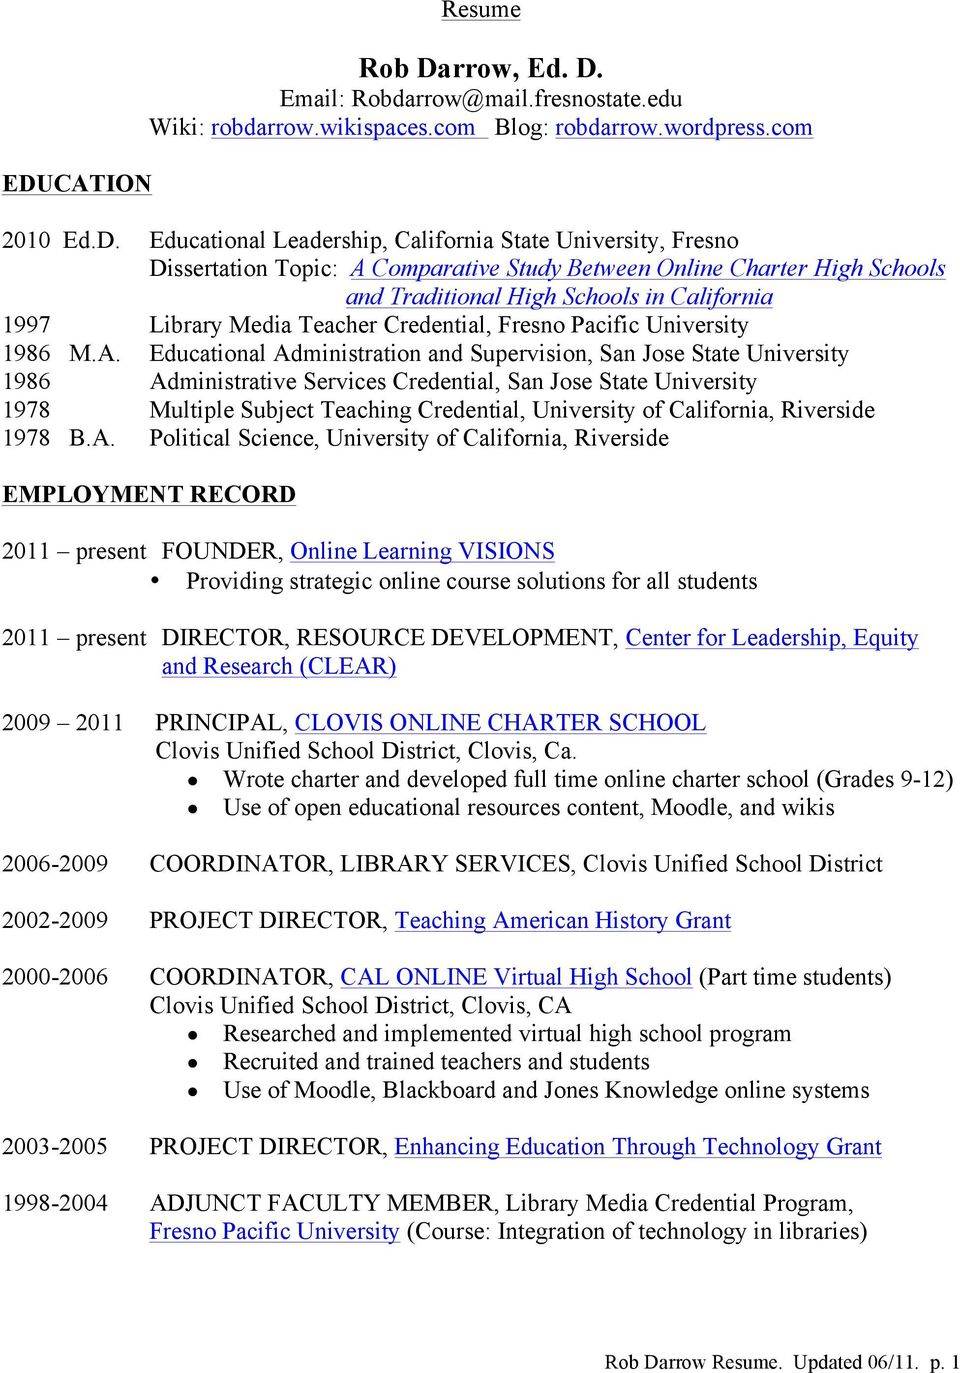 Comparative Study Between Online Charter High Schools and Traditional High Schools in California 1997 Library Media Teacher Credential, Fresno Pacific University 1986 M.A.